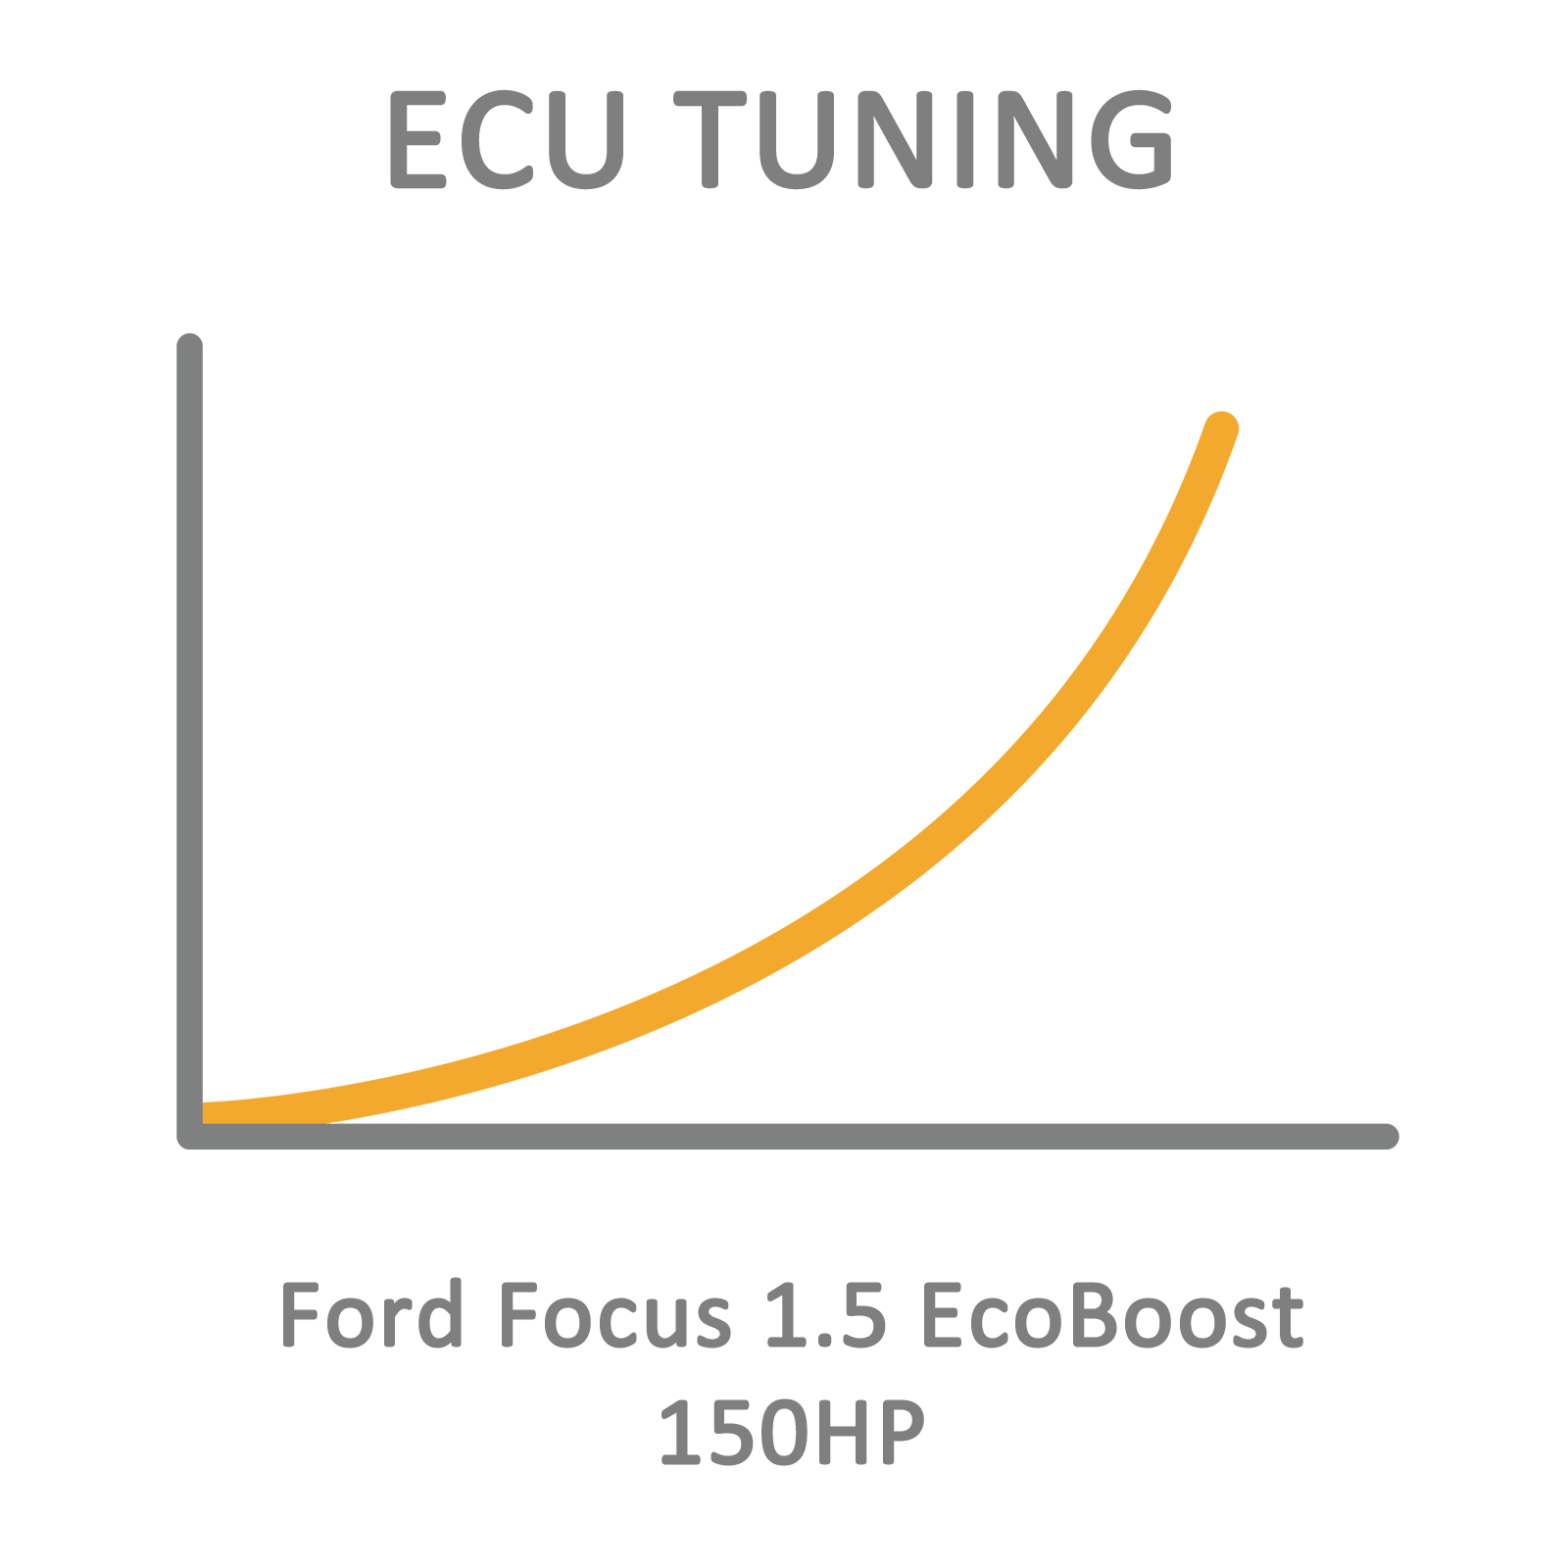 Ford Focus 1.5 EcoBoost 150HP ECU Tuning Remapping Programming